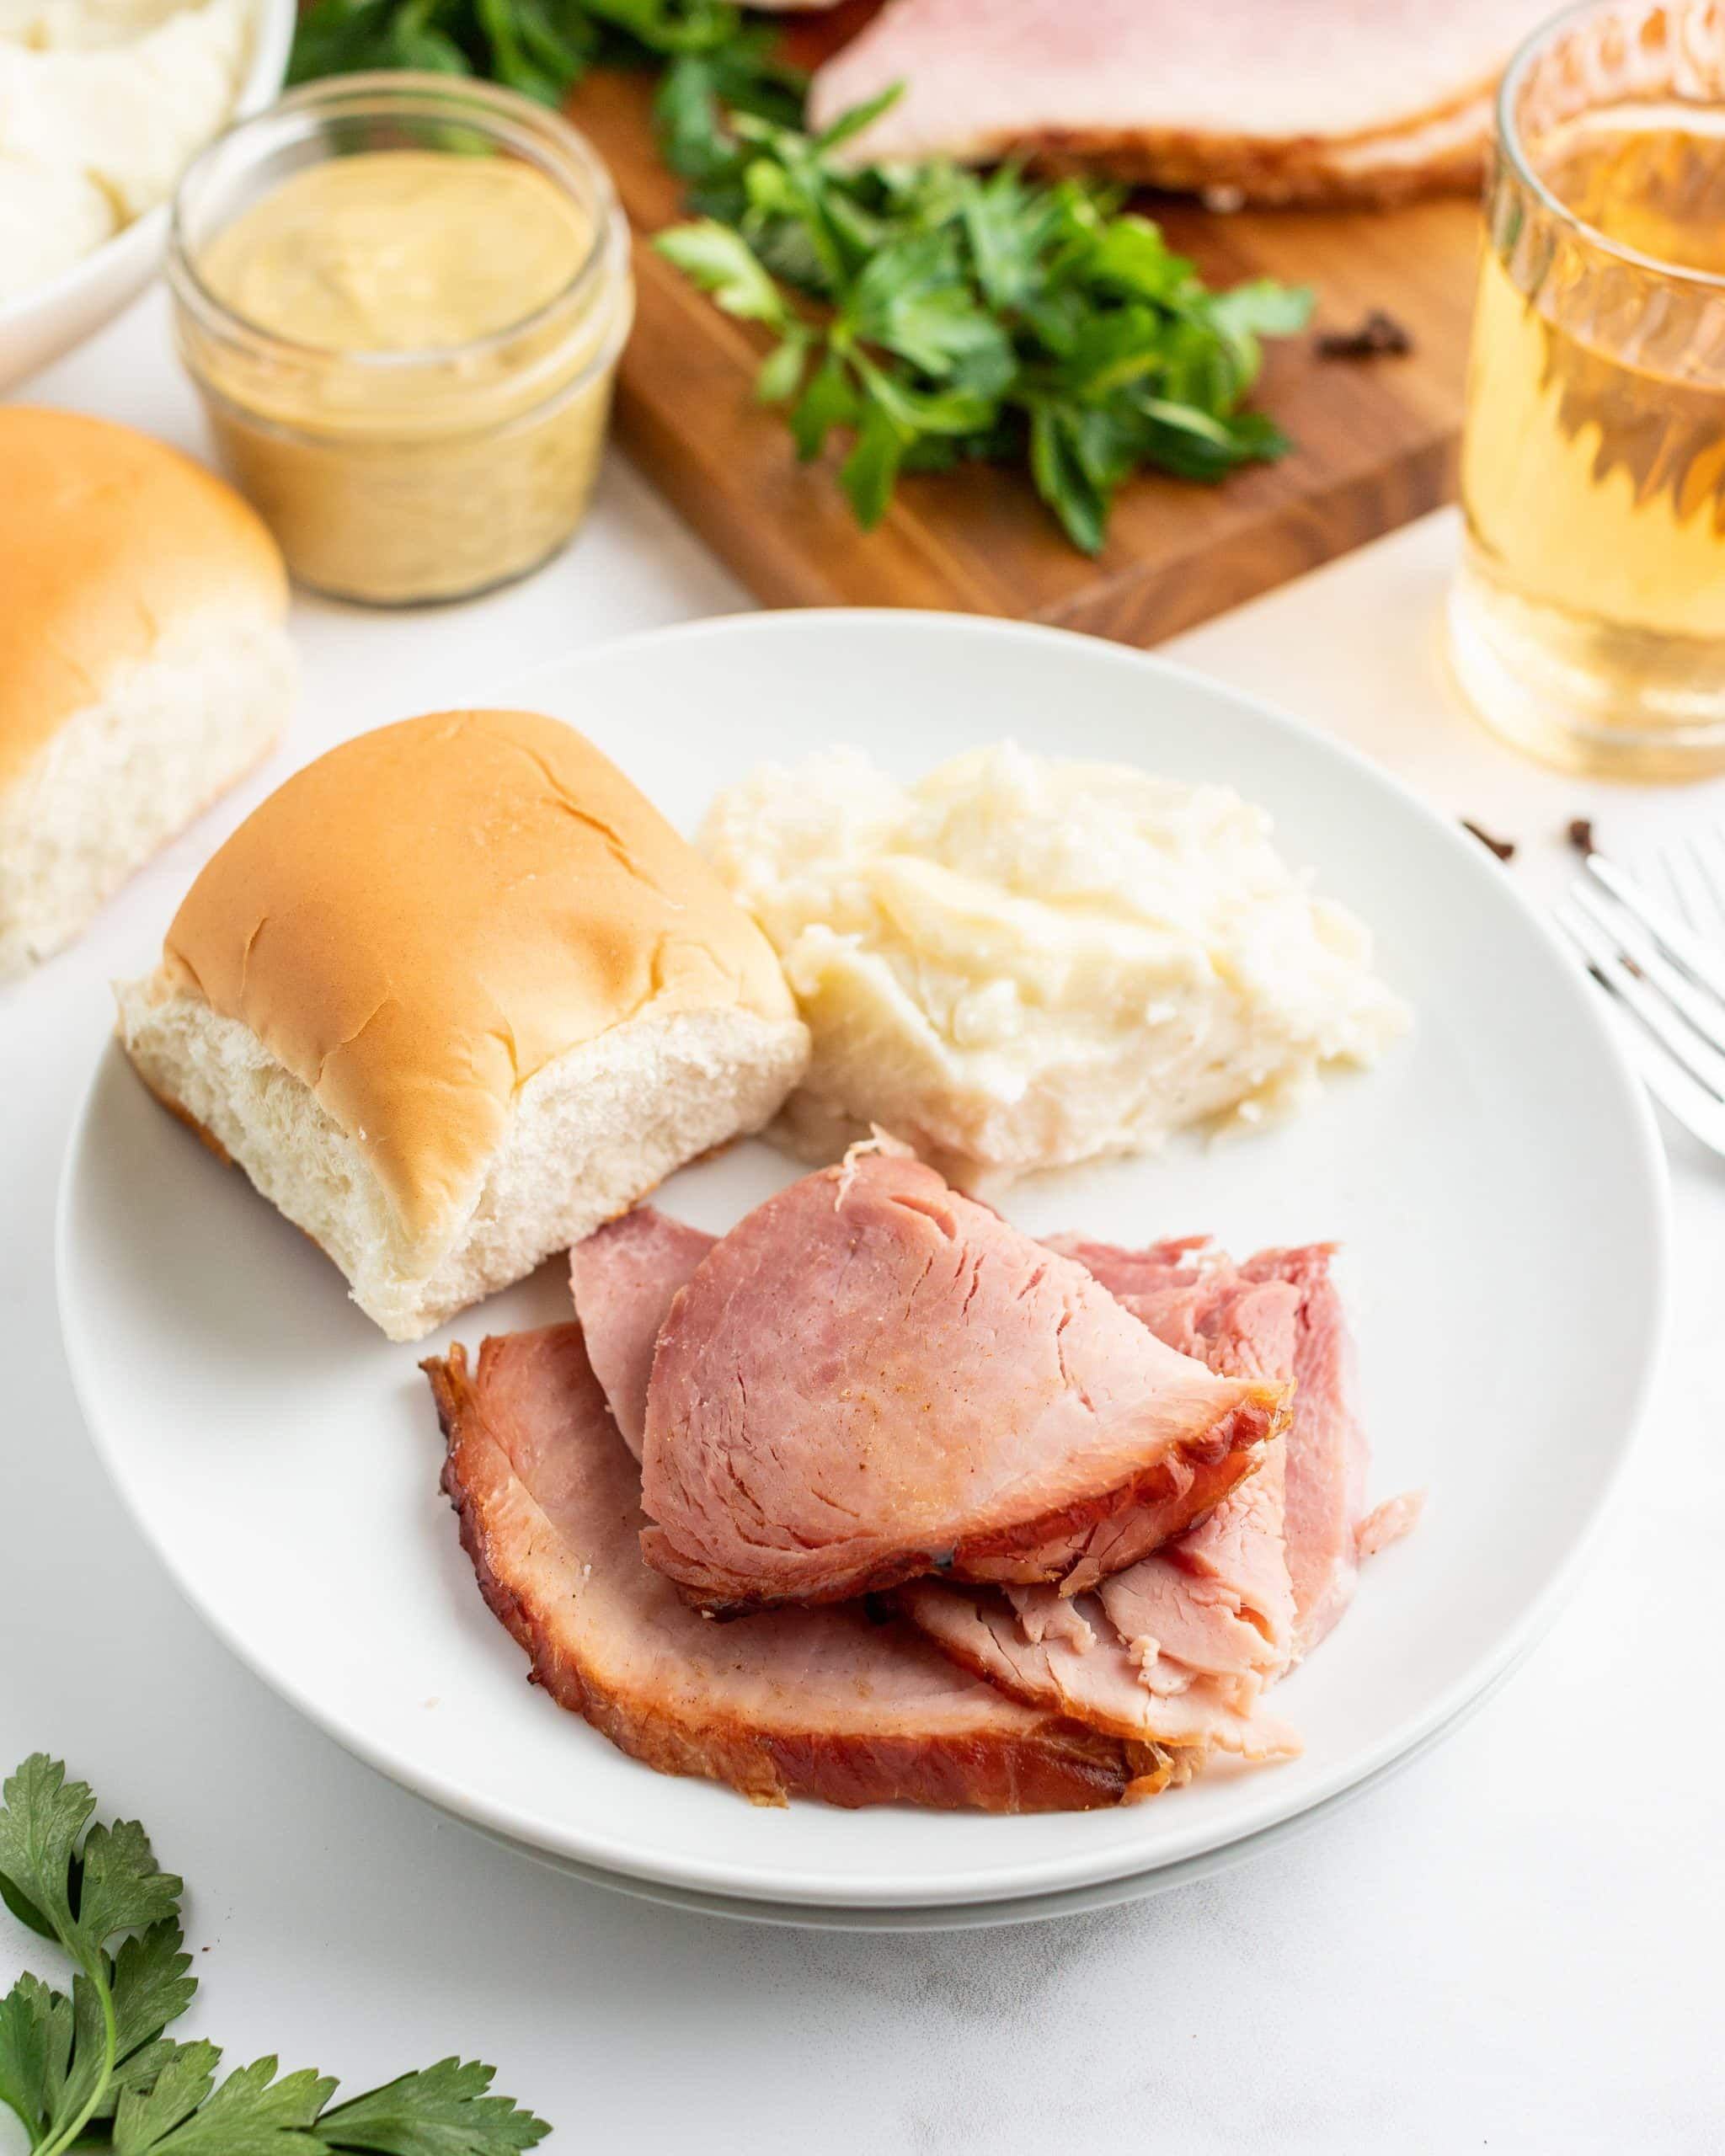 Slices of ham on a dinner plate with a roll and mashed potatoes.